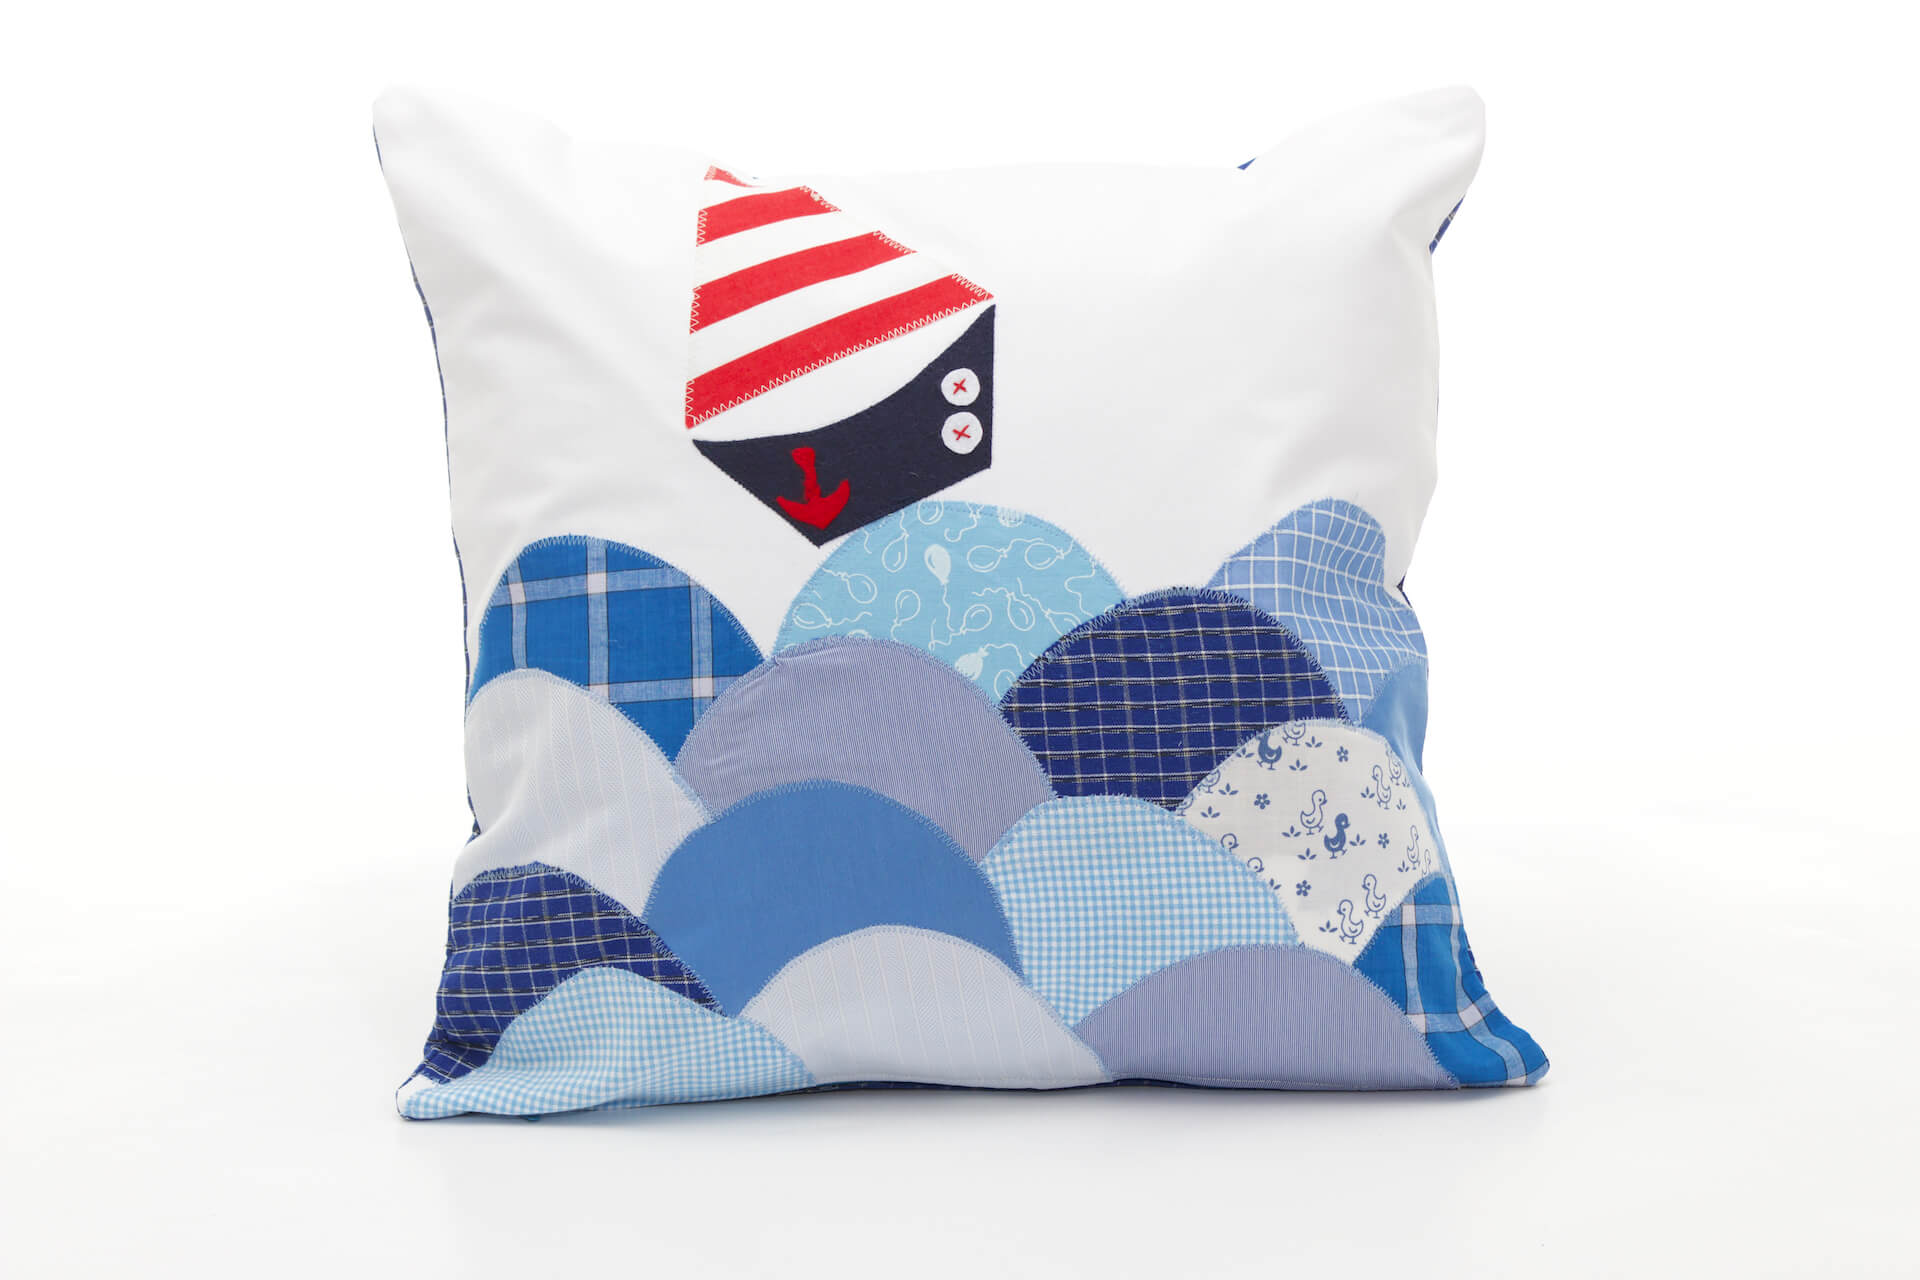 Decorative Pillows For Yachts : Handmade decorative pillow The Boat in Waves, 40x40 cm - Bowema